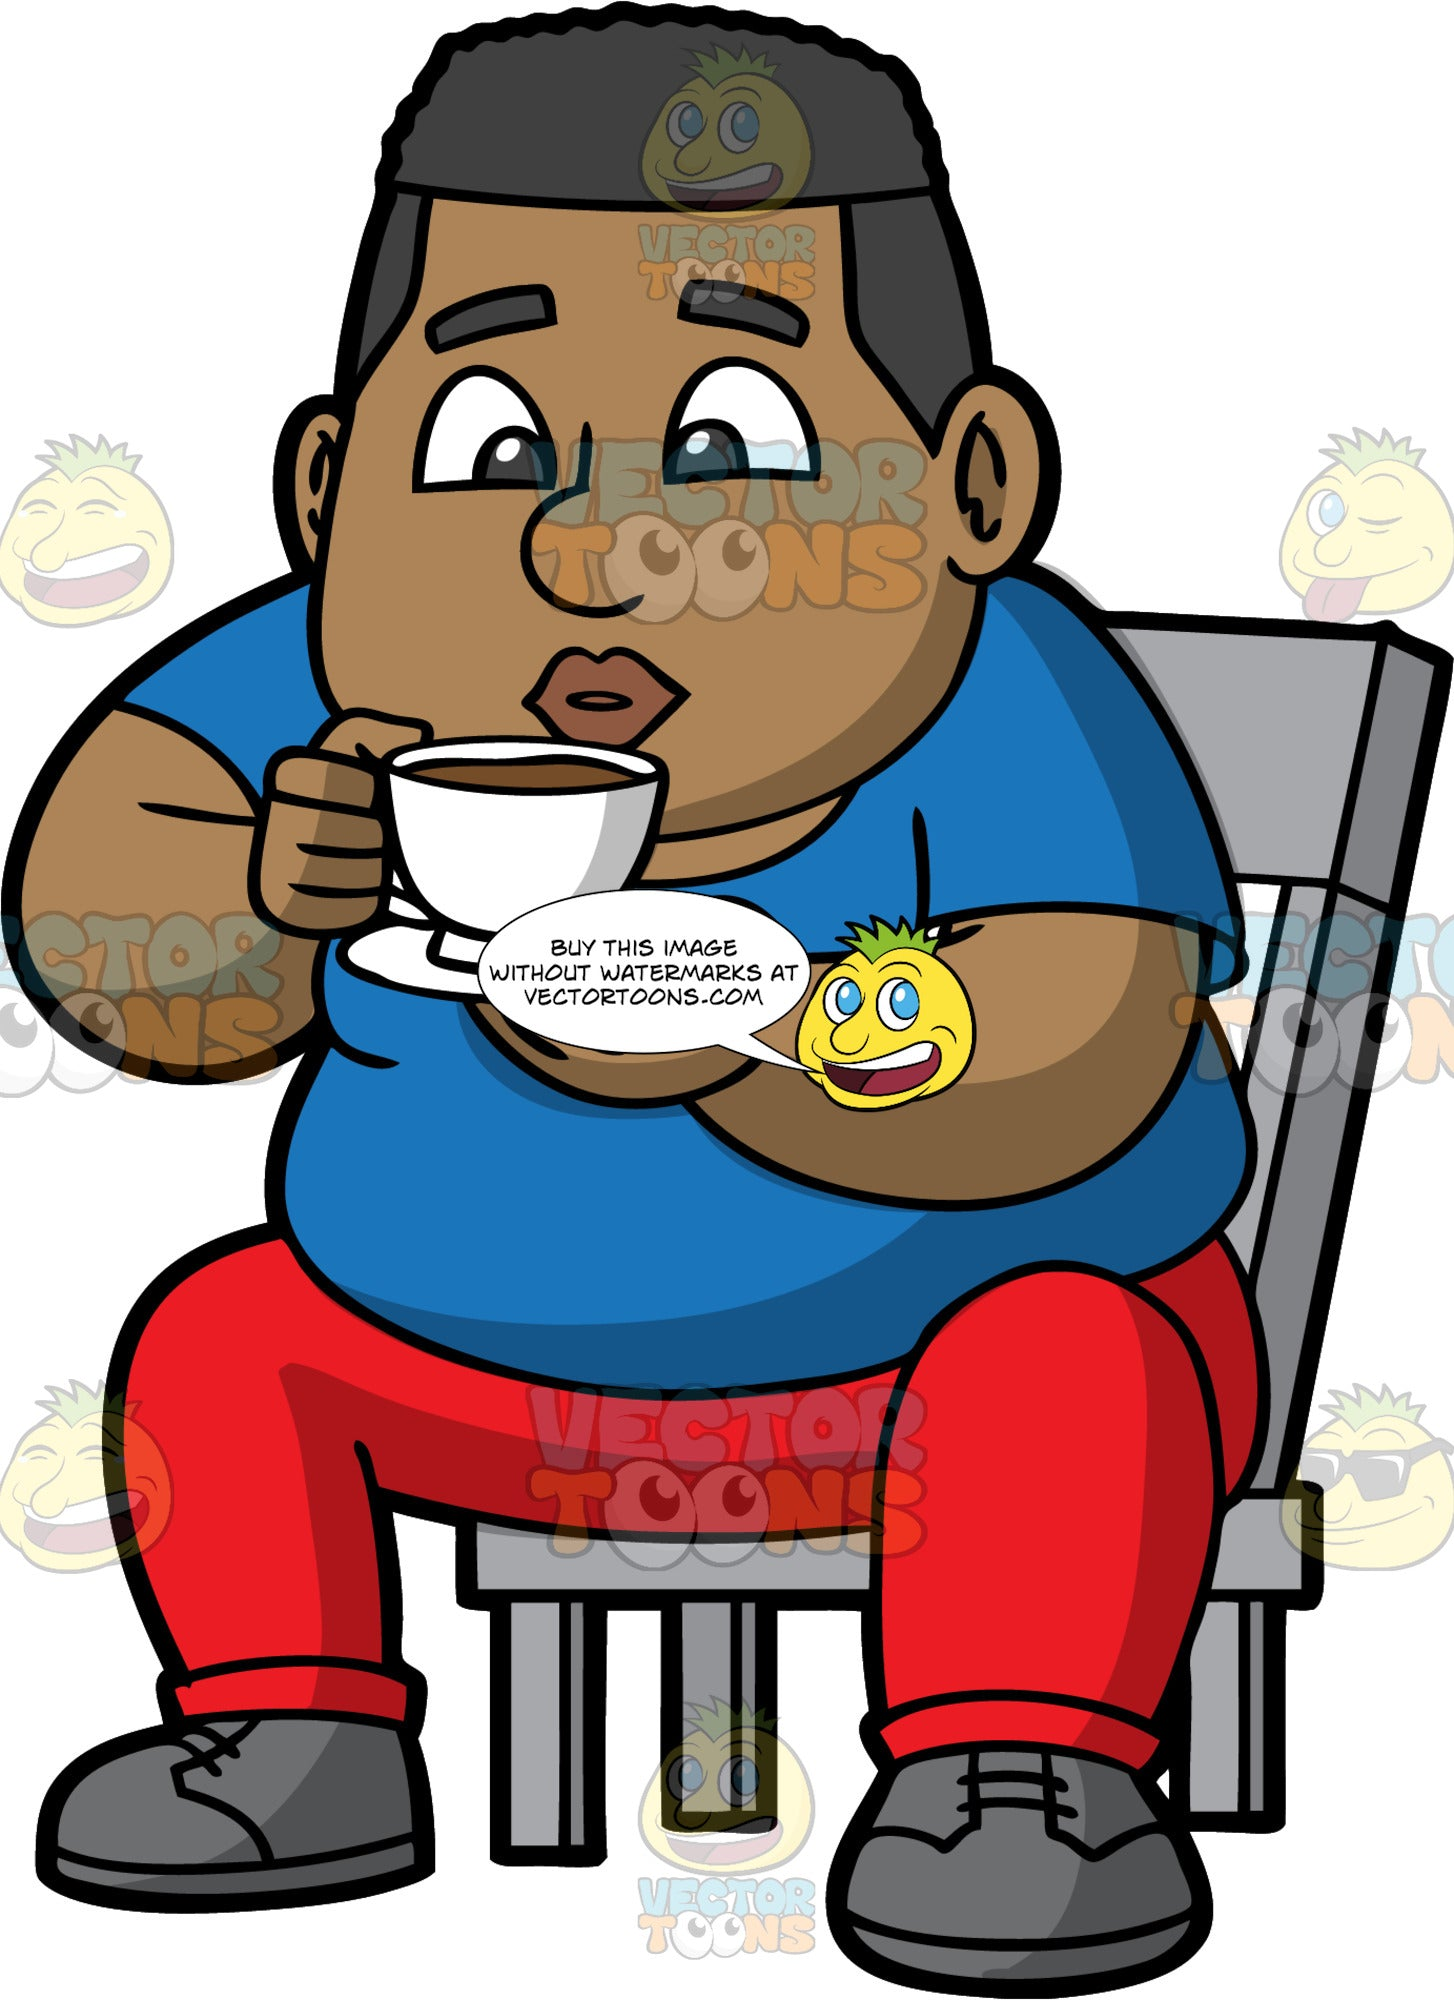 James Drinking A Hot Cup Of Coffee. A black man wearing red pants, a blue t-shirt, and gray shoes, sitting on a chair and drinking coffee from a white coffee cup